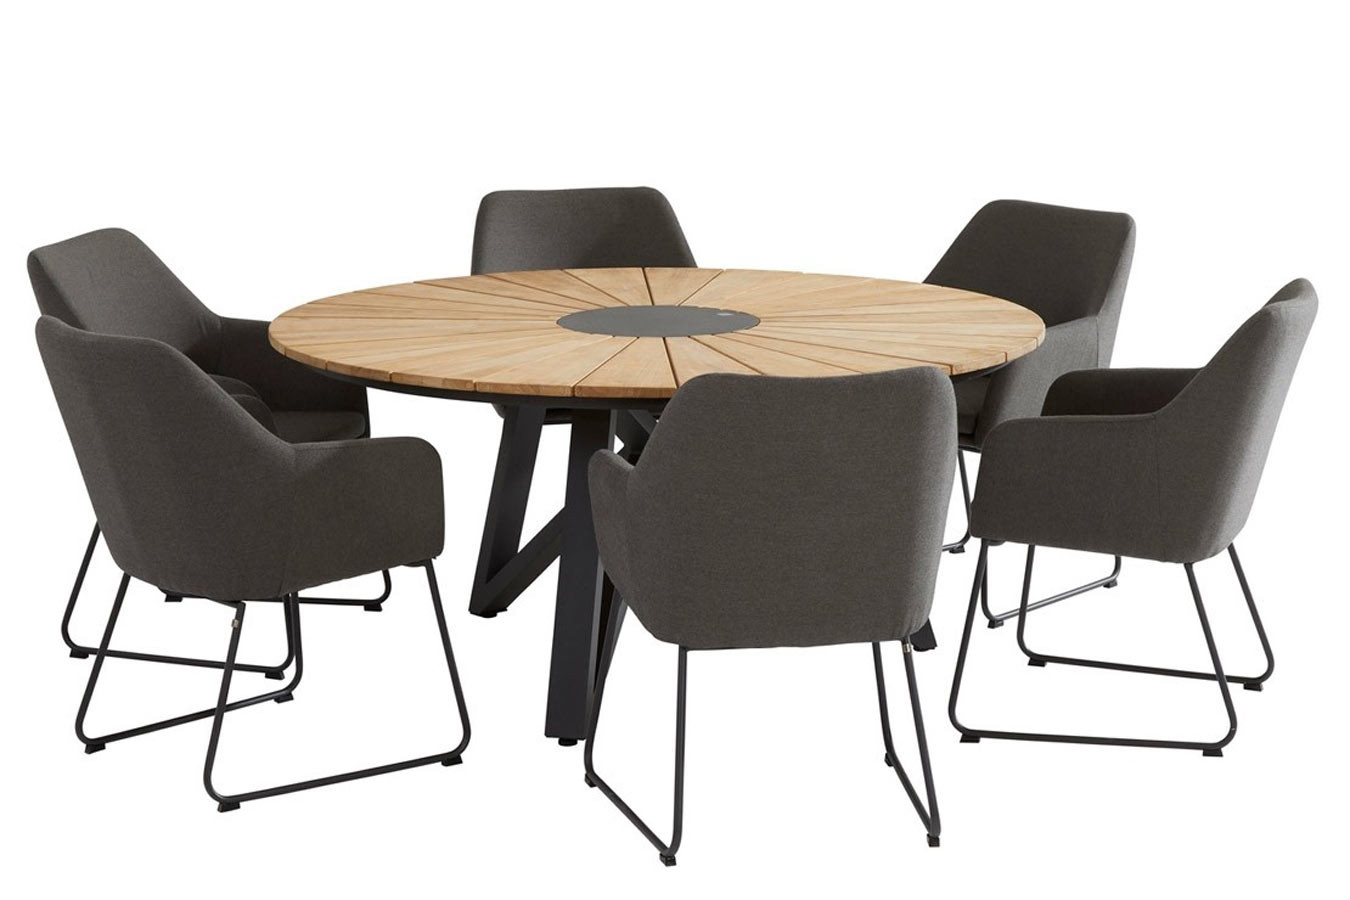 Global dining table set met Amora dining stoelen